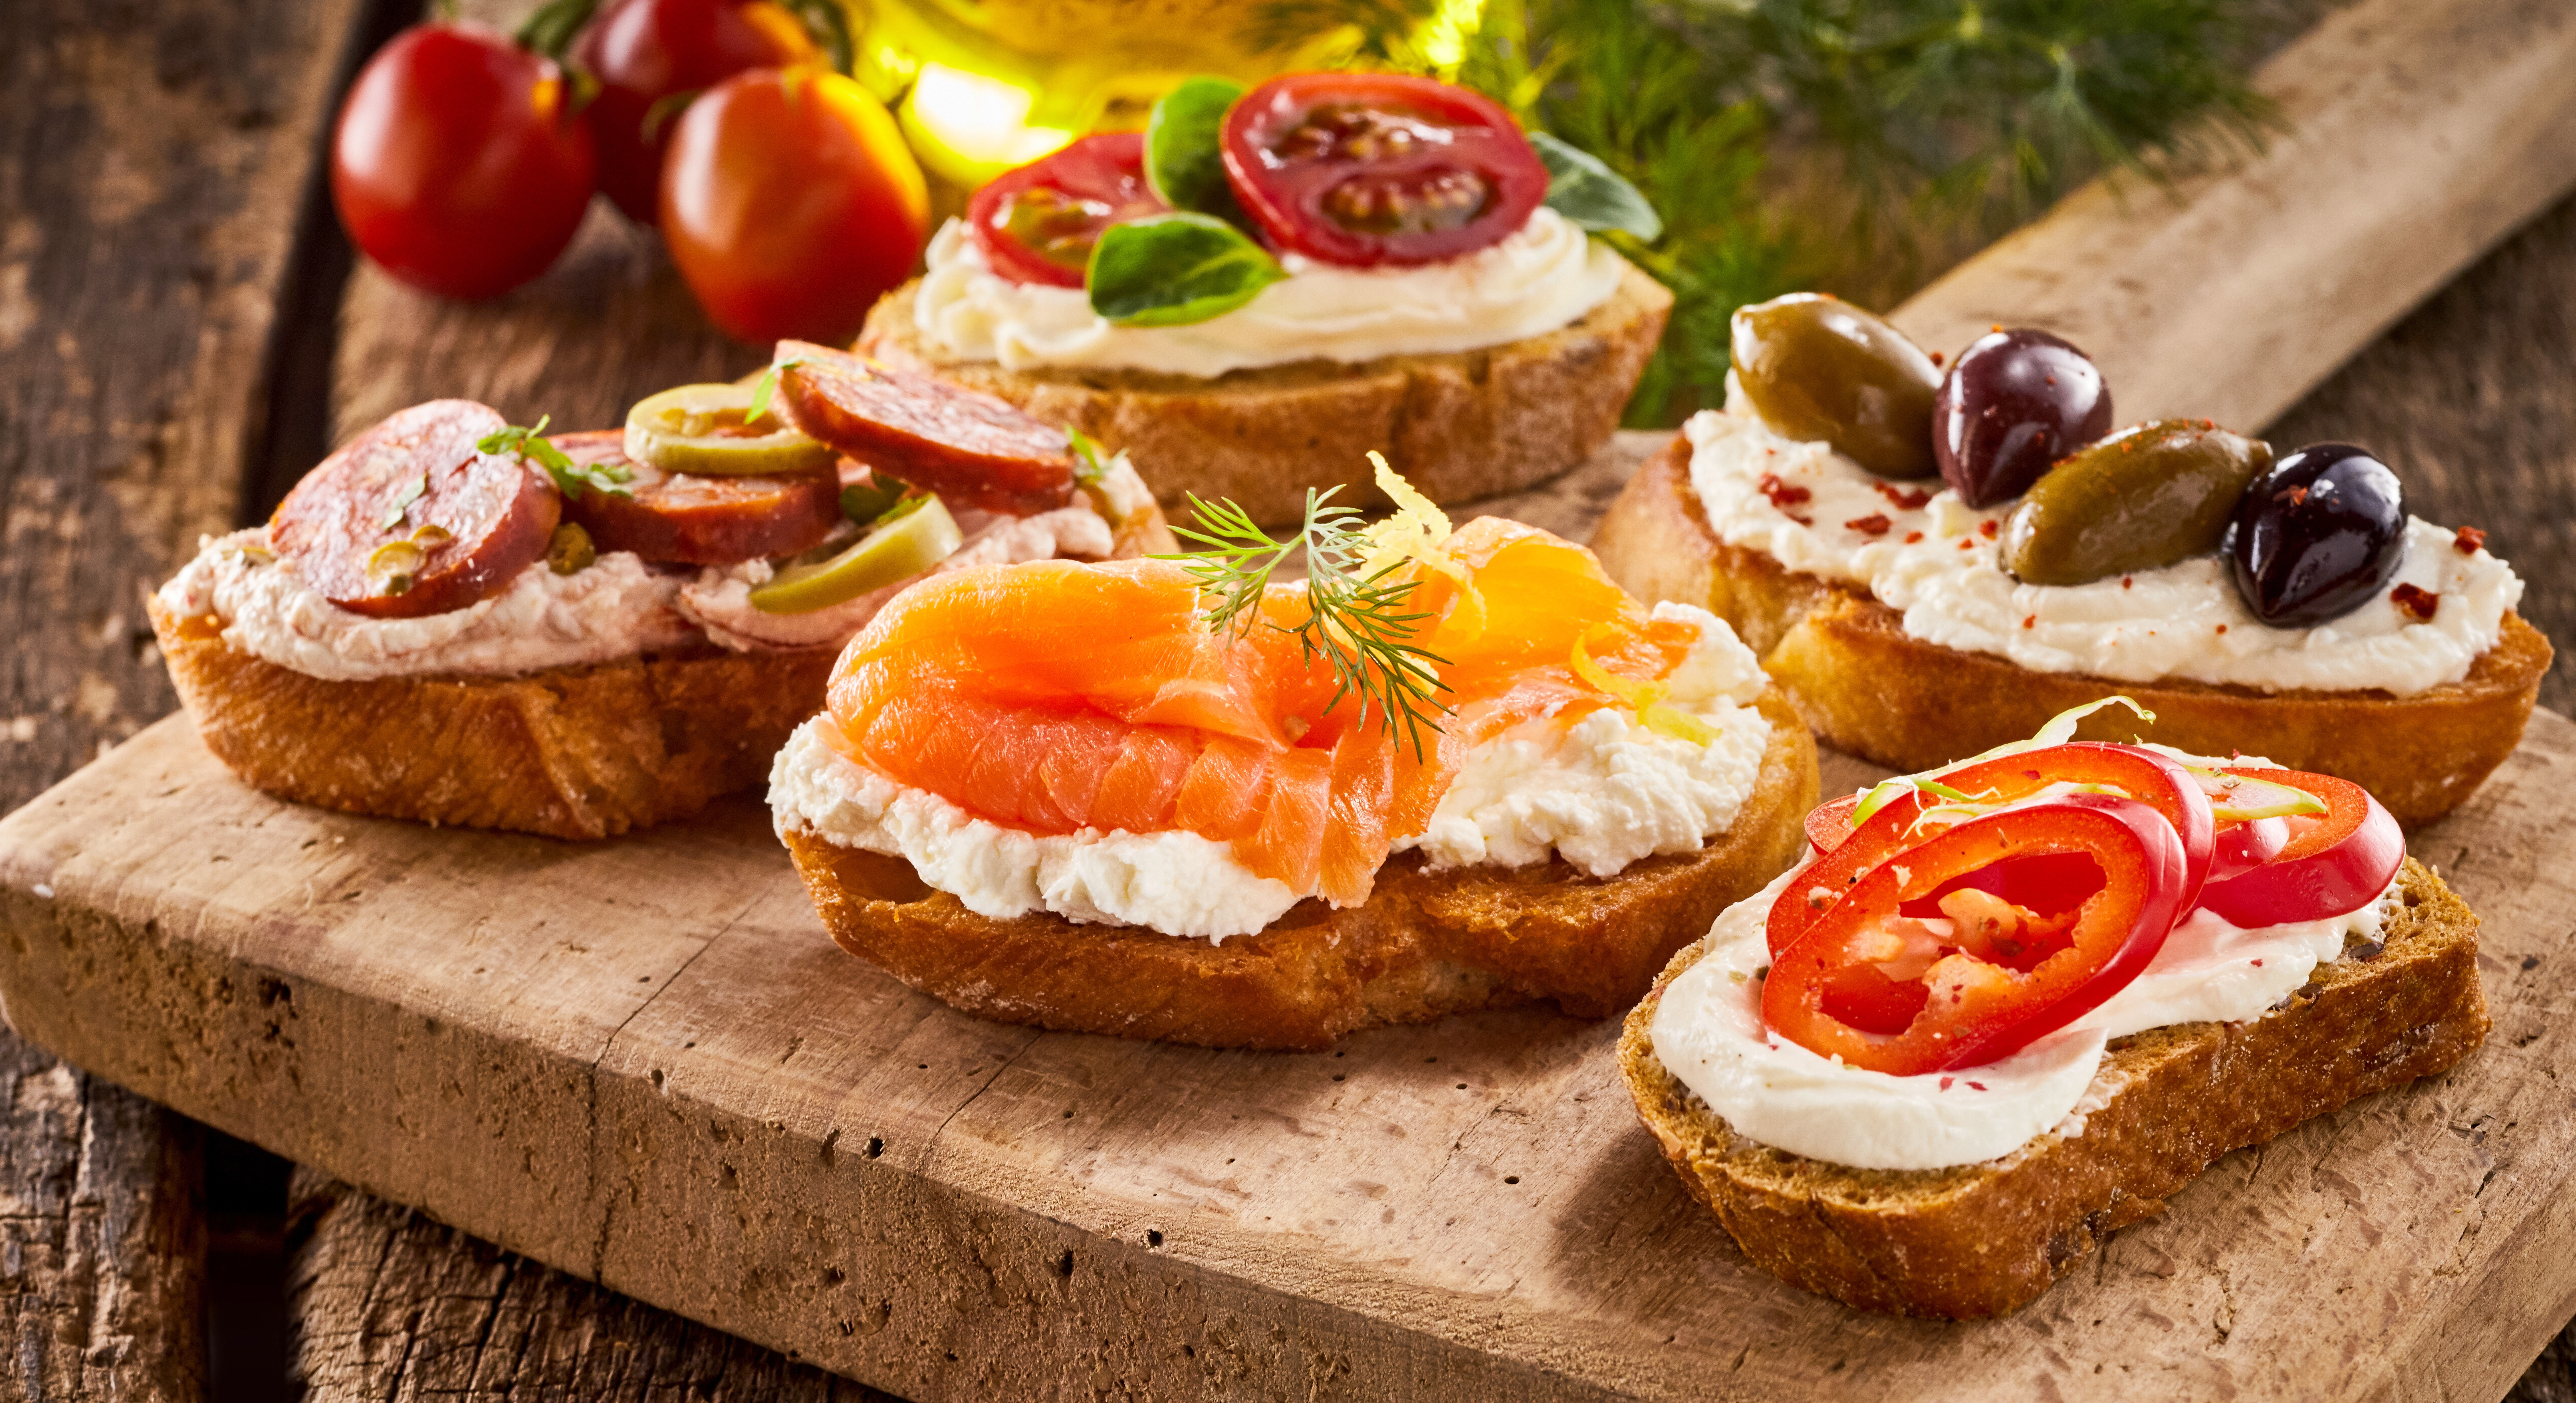 Example of a selection of canapes